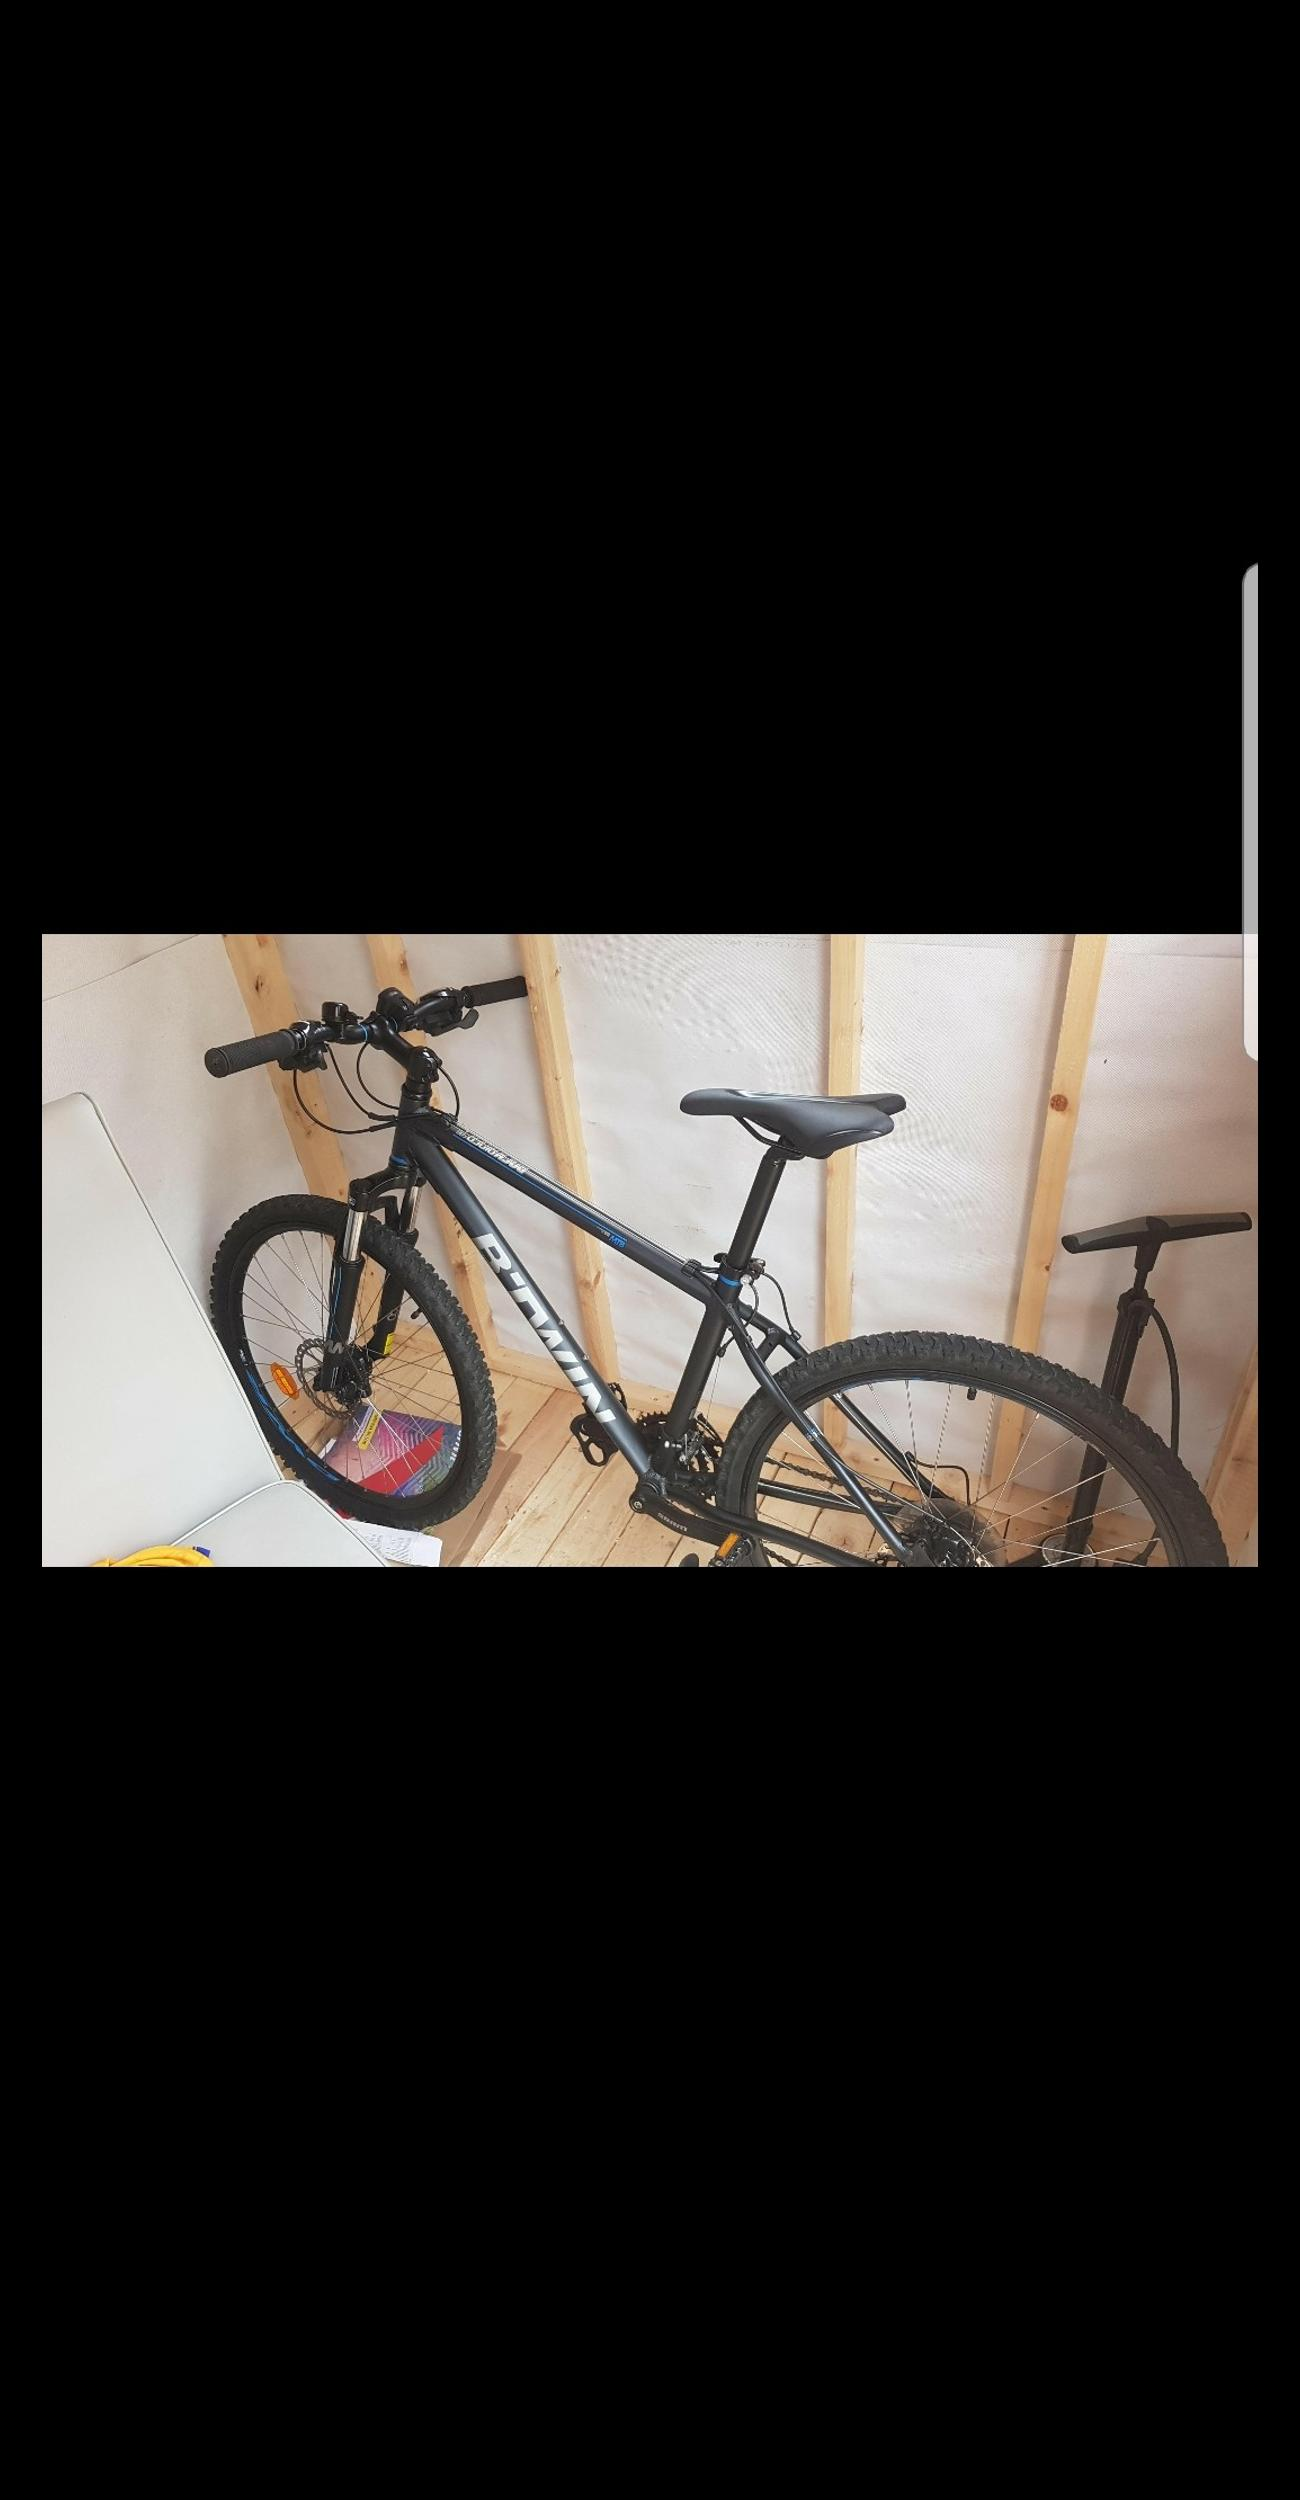 e15a1ff34 Btwin rockrider Bike in BT17 Belfast for £130.00 for sale - Shpock